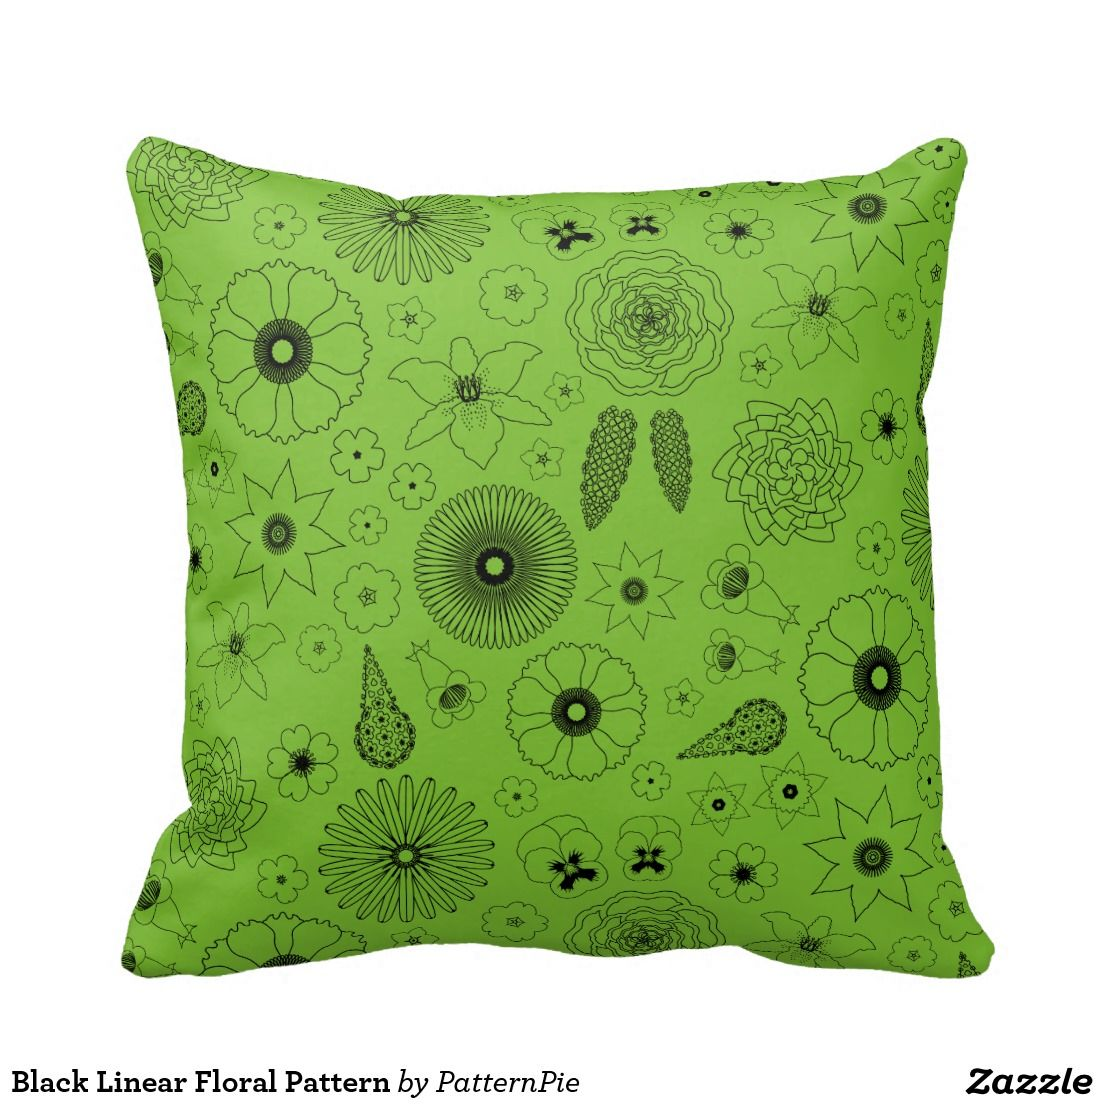 Black Linear Floral Pattern Throw Cushions